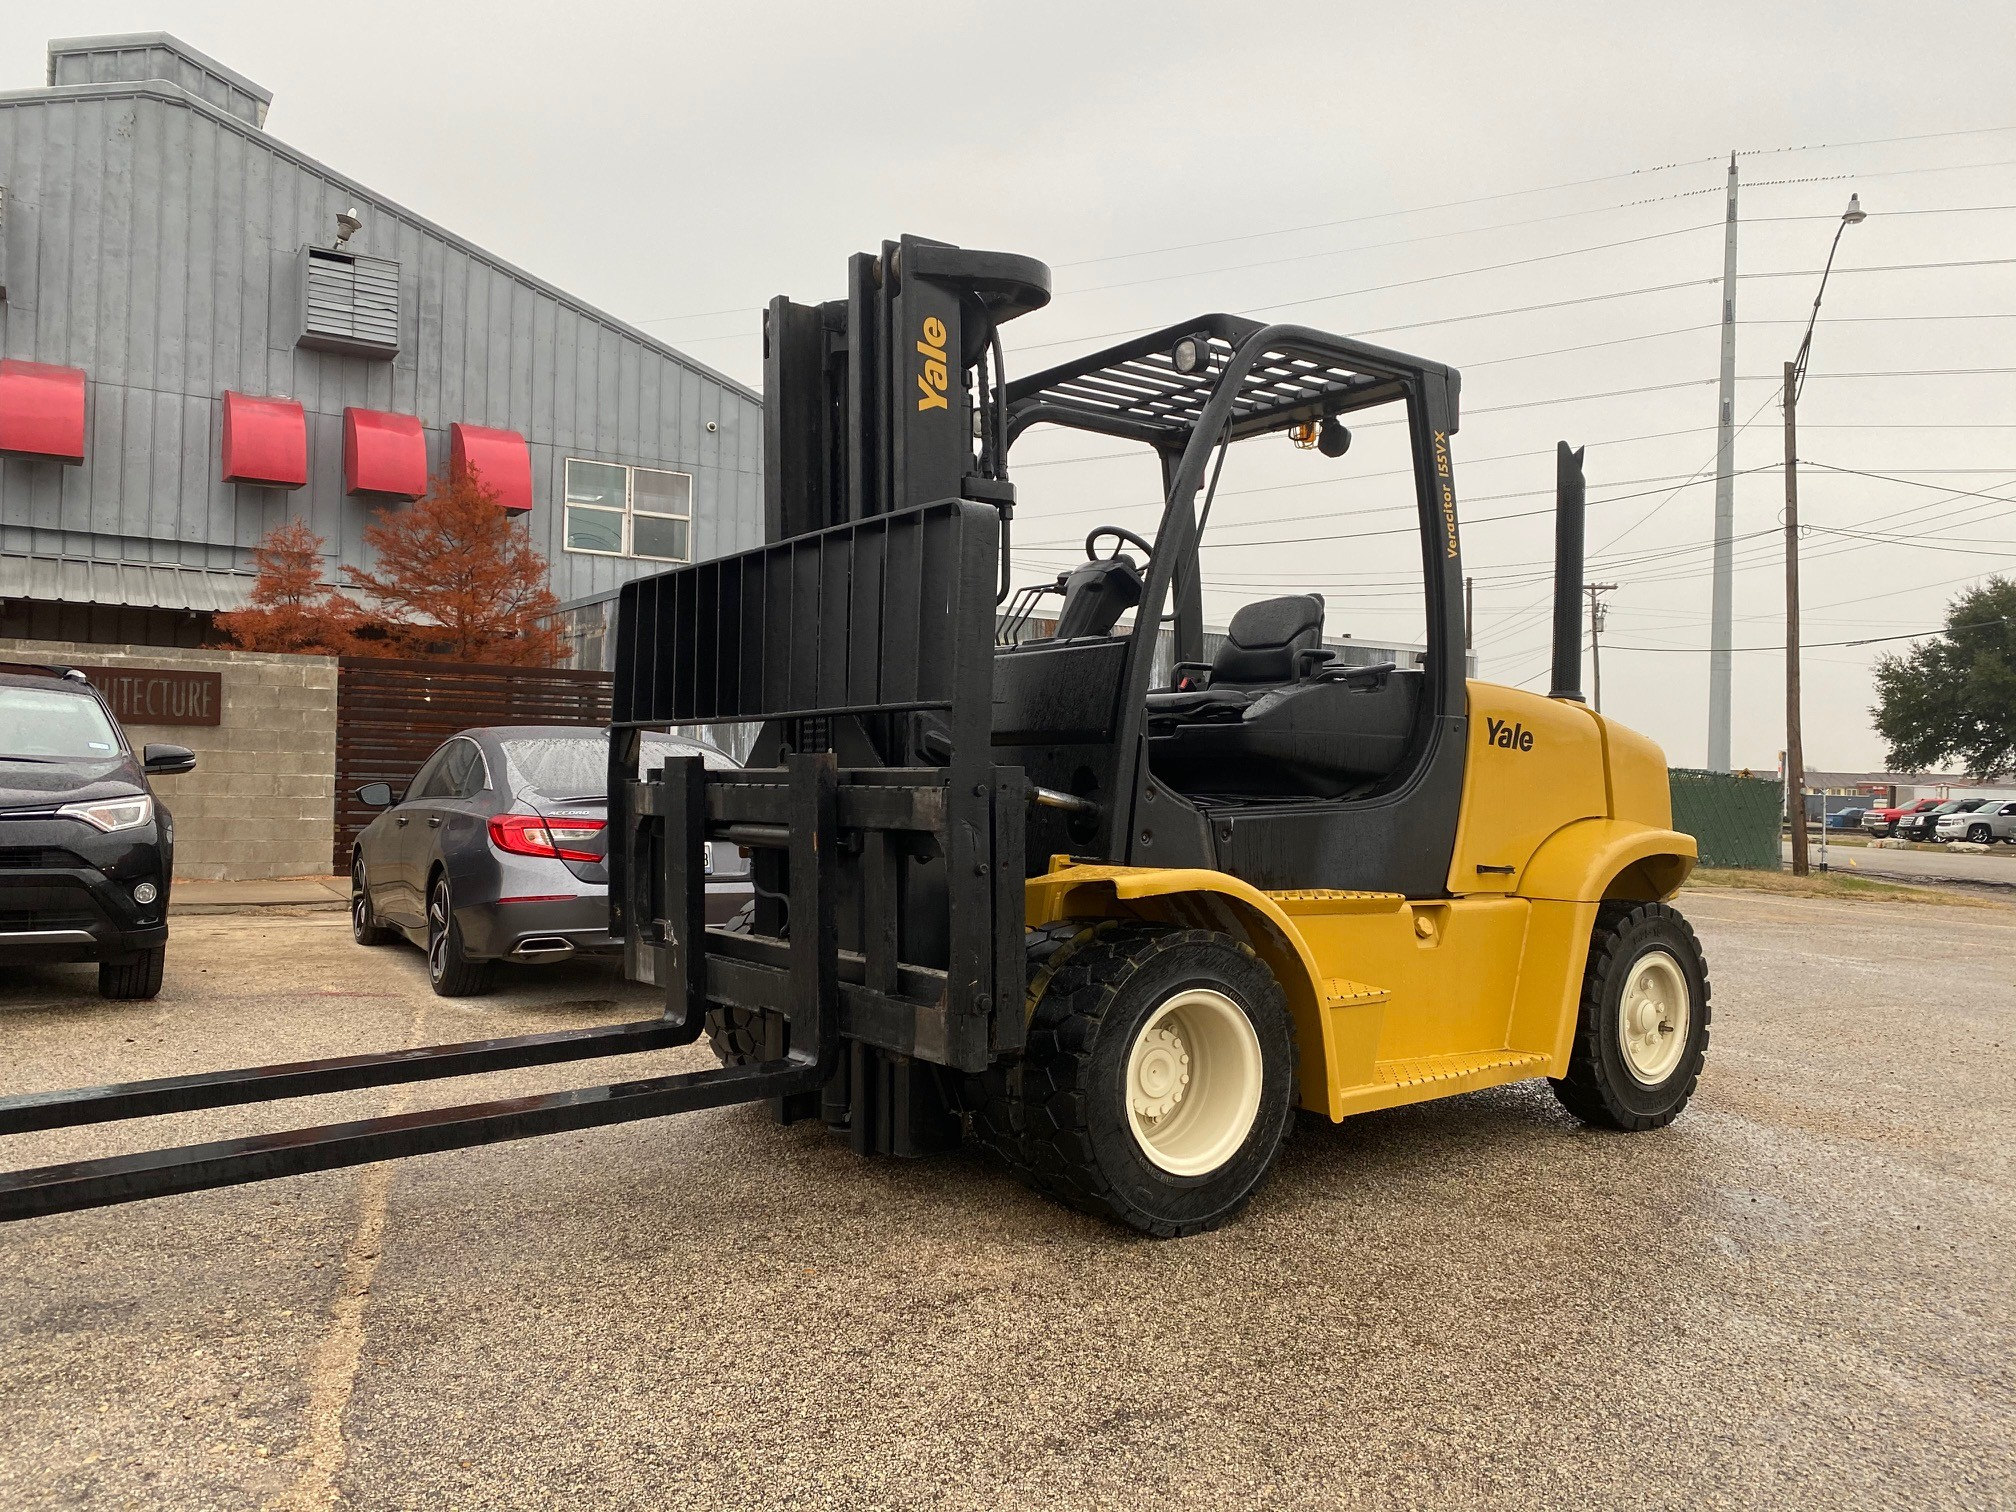 Used, 2011, Yale, GDP155VXNCBE102, Forklifts / Lift Trucks